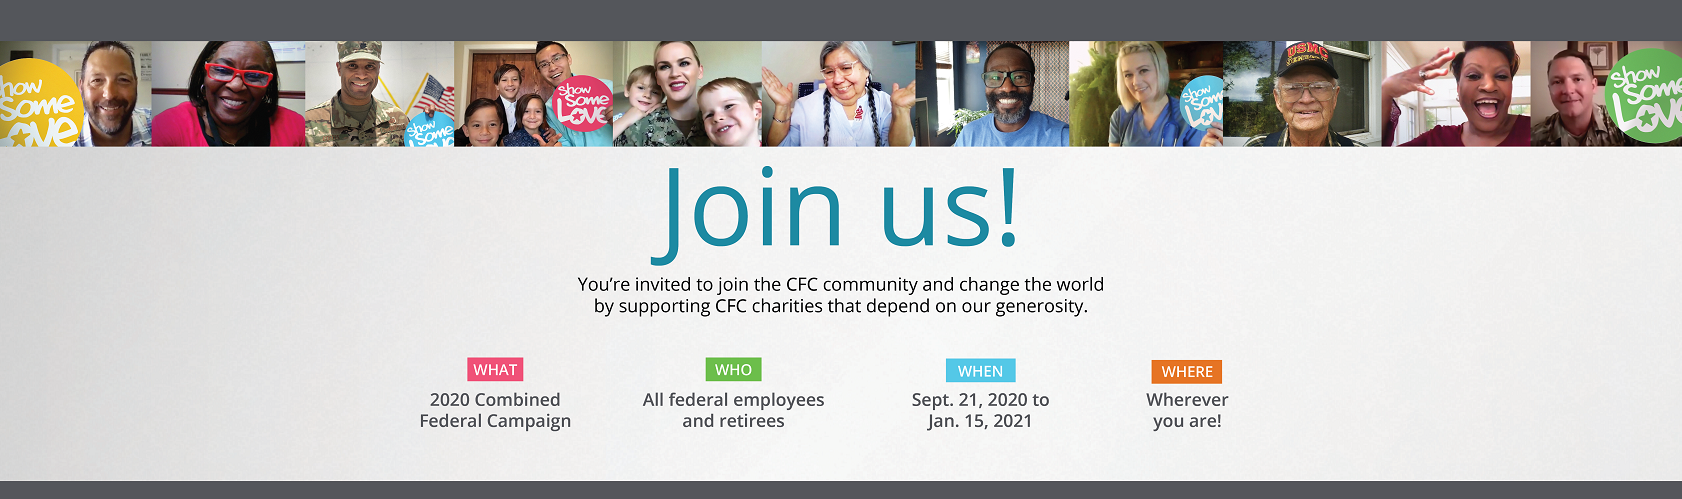 Banner with photos of federal employees and text about joining the CFC community